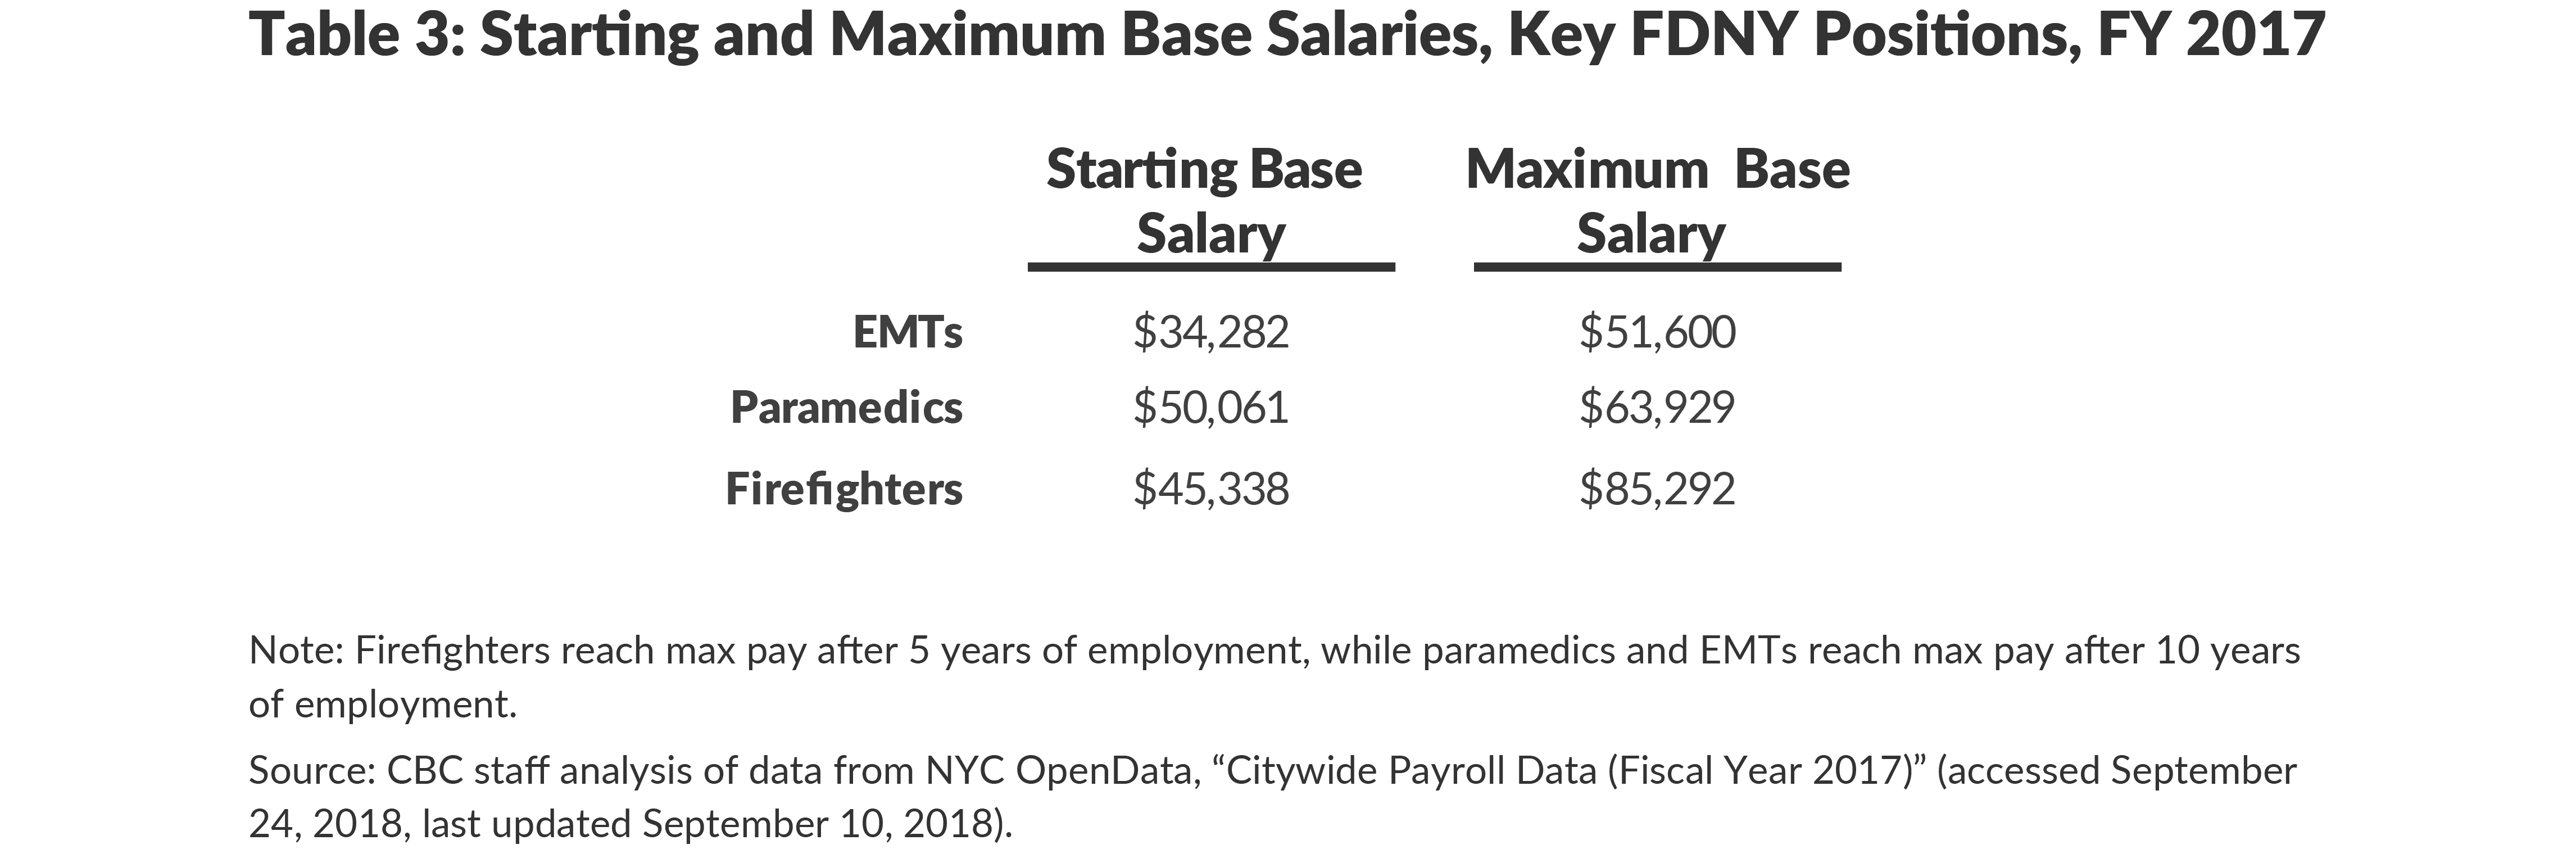 Table 3: Starting and Maximum Base Salaries, Key FDNY Positions, FY 2017